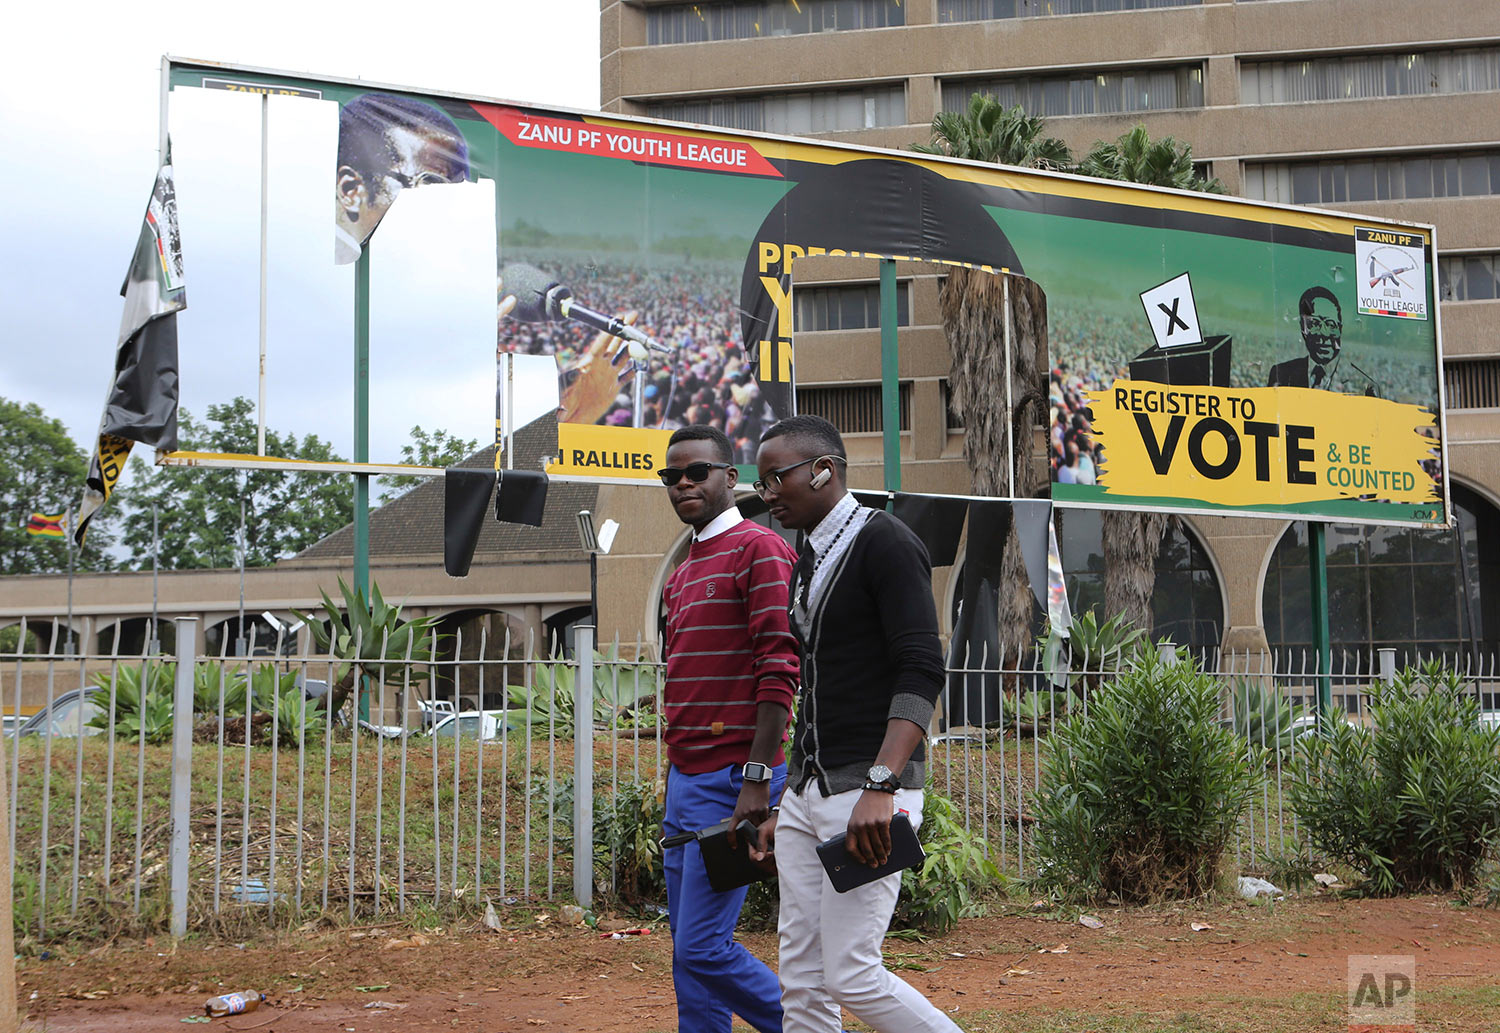 People walk past a partly torn down ruling party banner that showed Zimbabwe President Robert Mugabe's face at the Zanu pf headquarters in Harare, Zimbabwe Sunday Nov. 19, 2017.  Clinging to his now virtually powerless post, longtime President Mugabe on Sunday was set to discuss his expected exit with the army commander who put him under house arrest, while the ruling party prepared to recall the world's oldest head of state as its leader. (AP Photo/Tsvangirayi Mukwazhi)